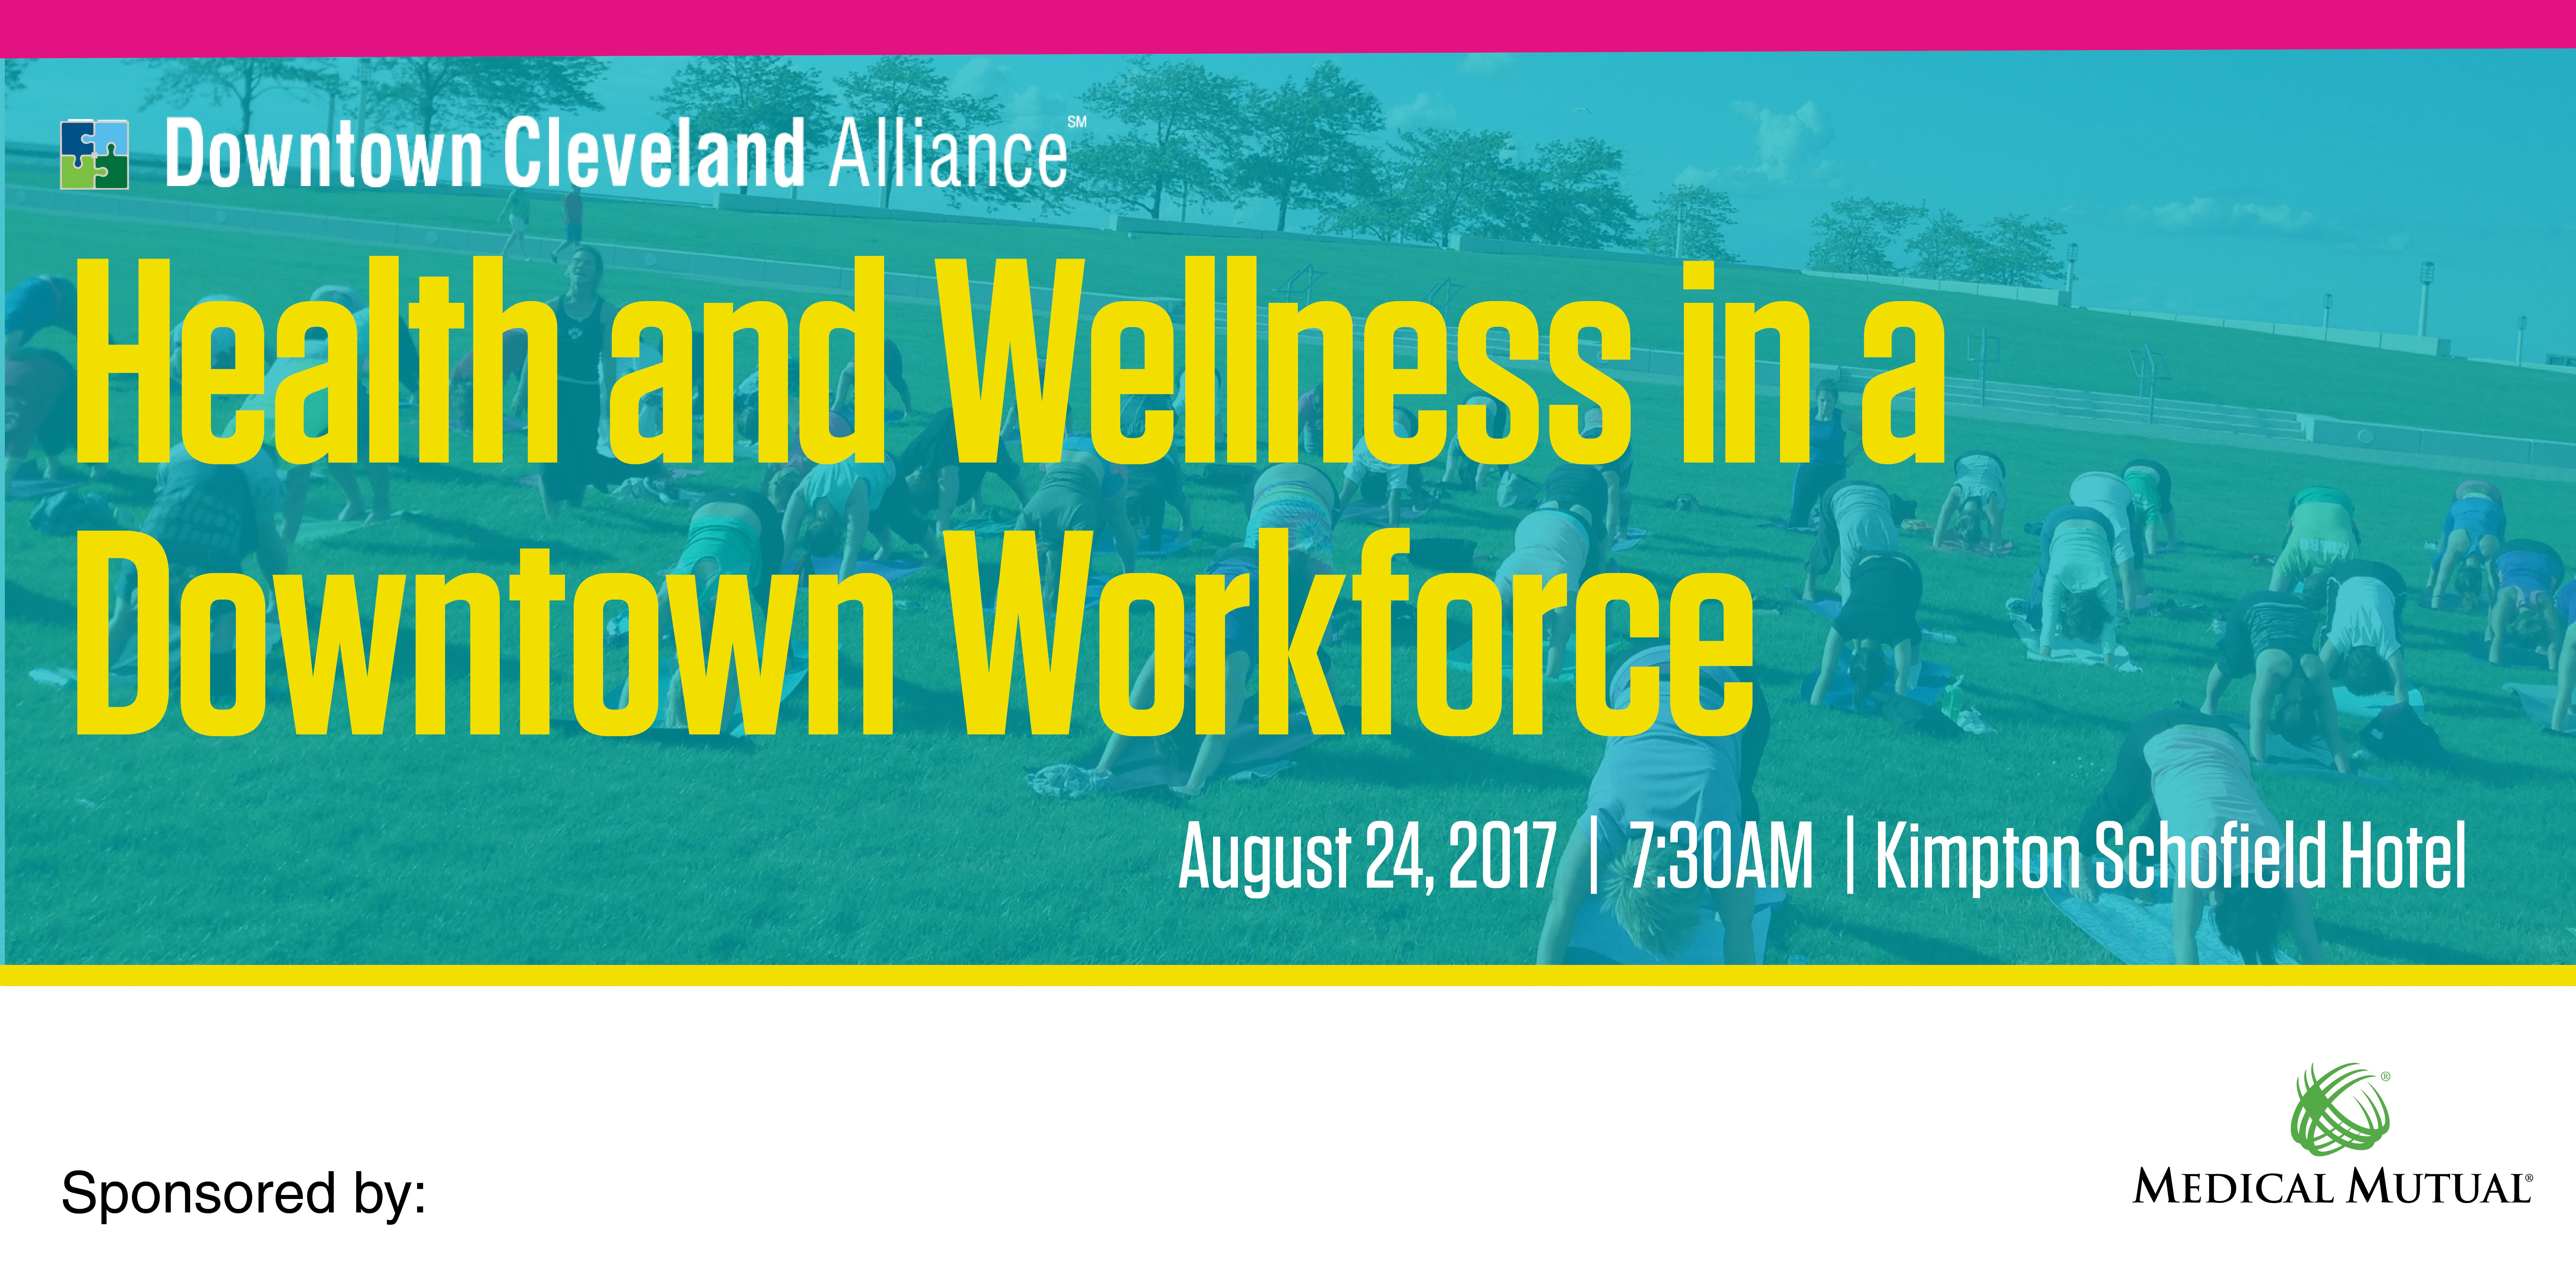 Health and Wellness in a Downtown Workforce